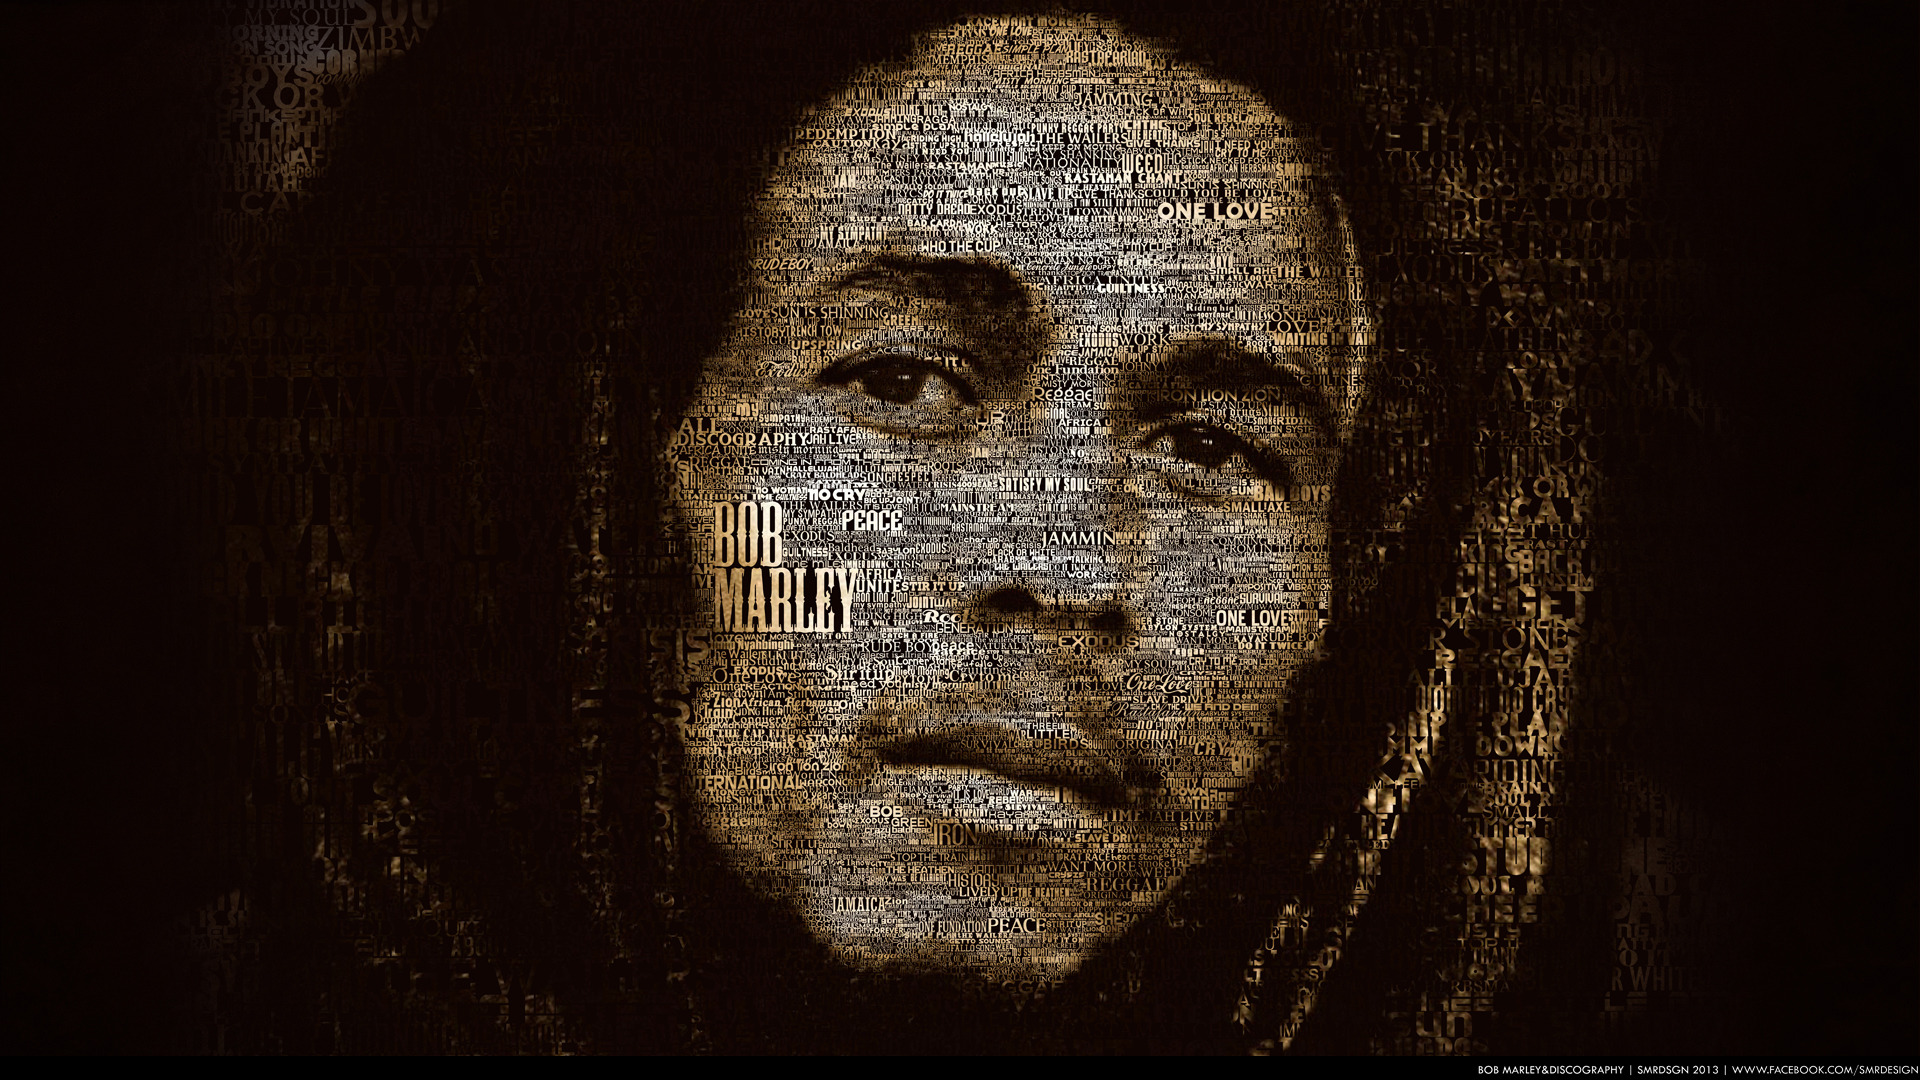 Bob marley wallpaper typography hd desktop wallpapers 4k hd - Rasta bob live wallpaper free download ...